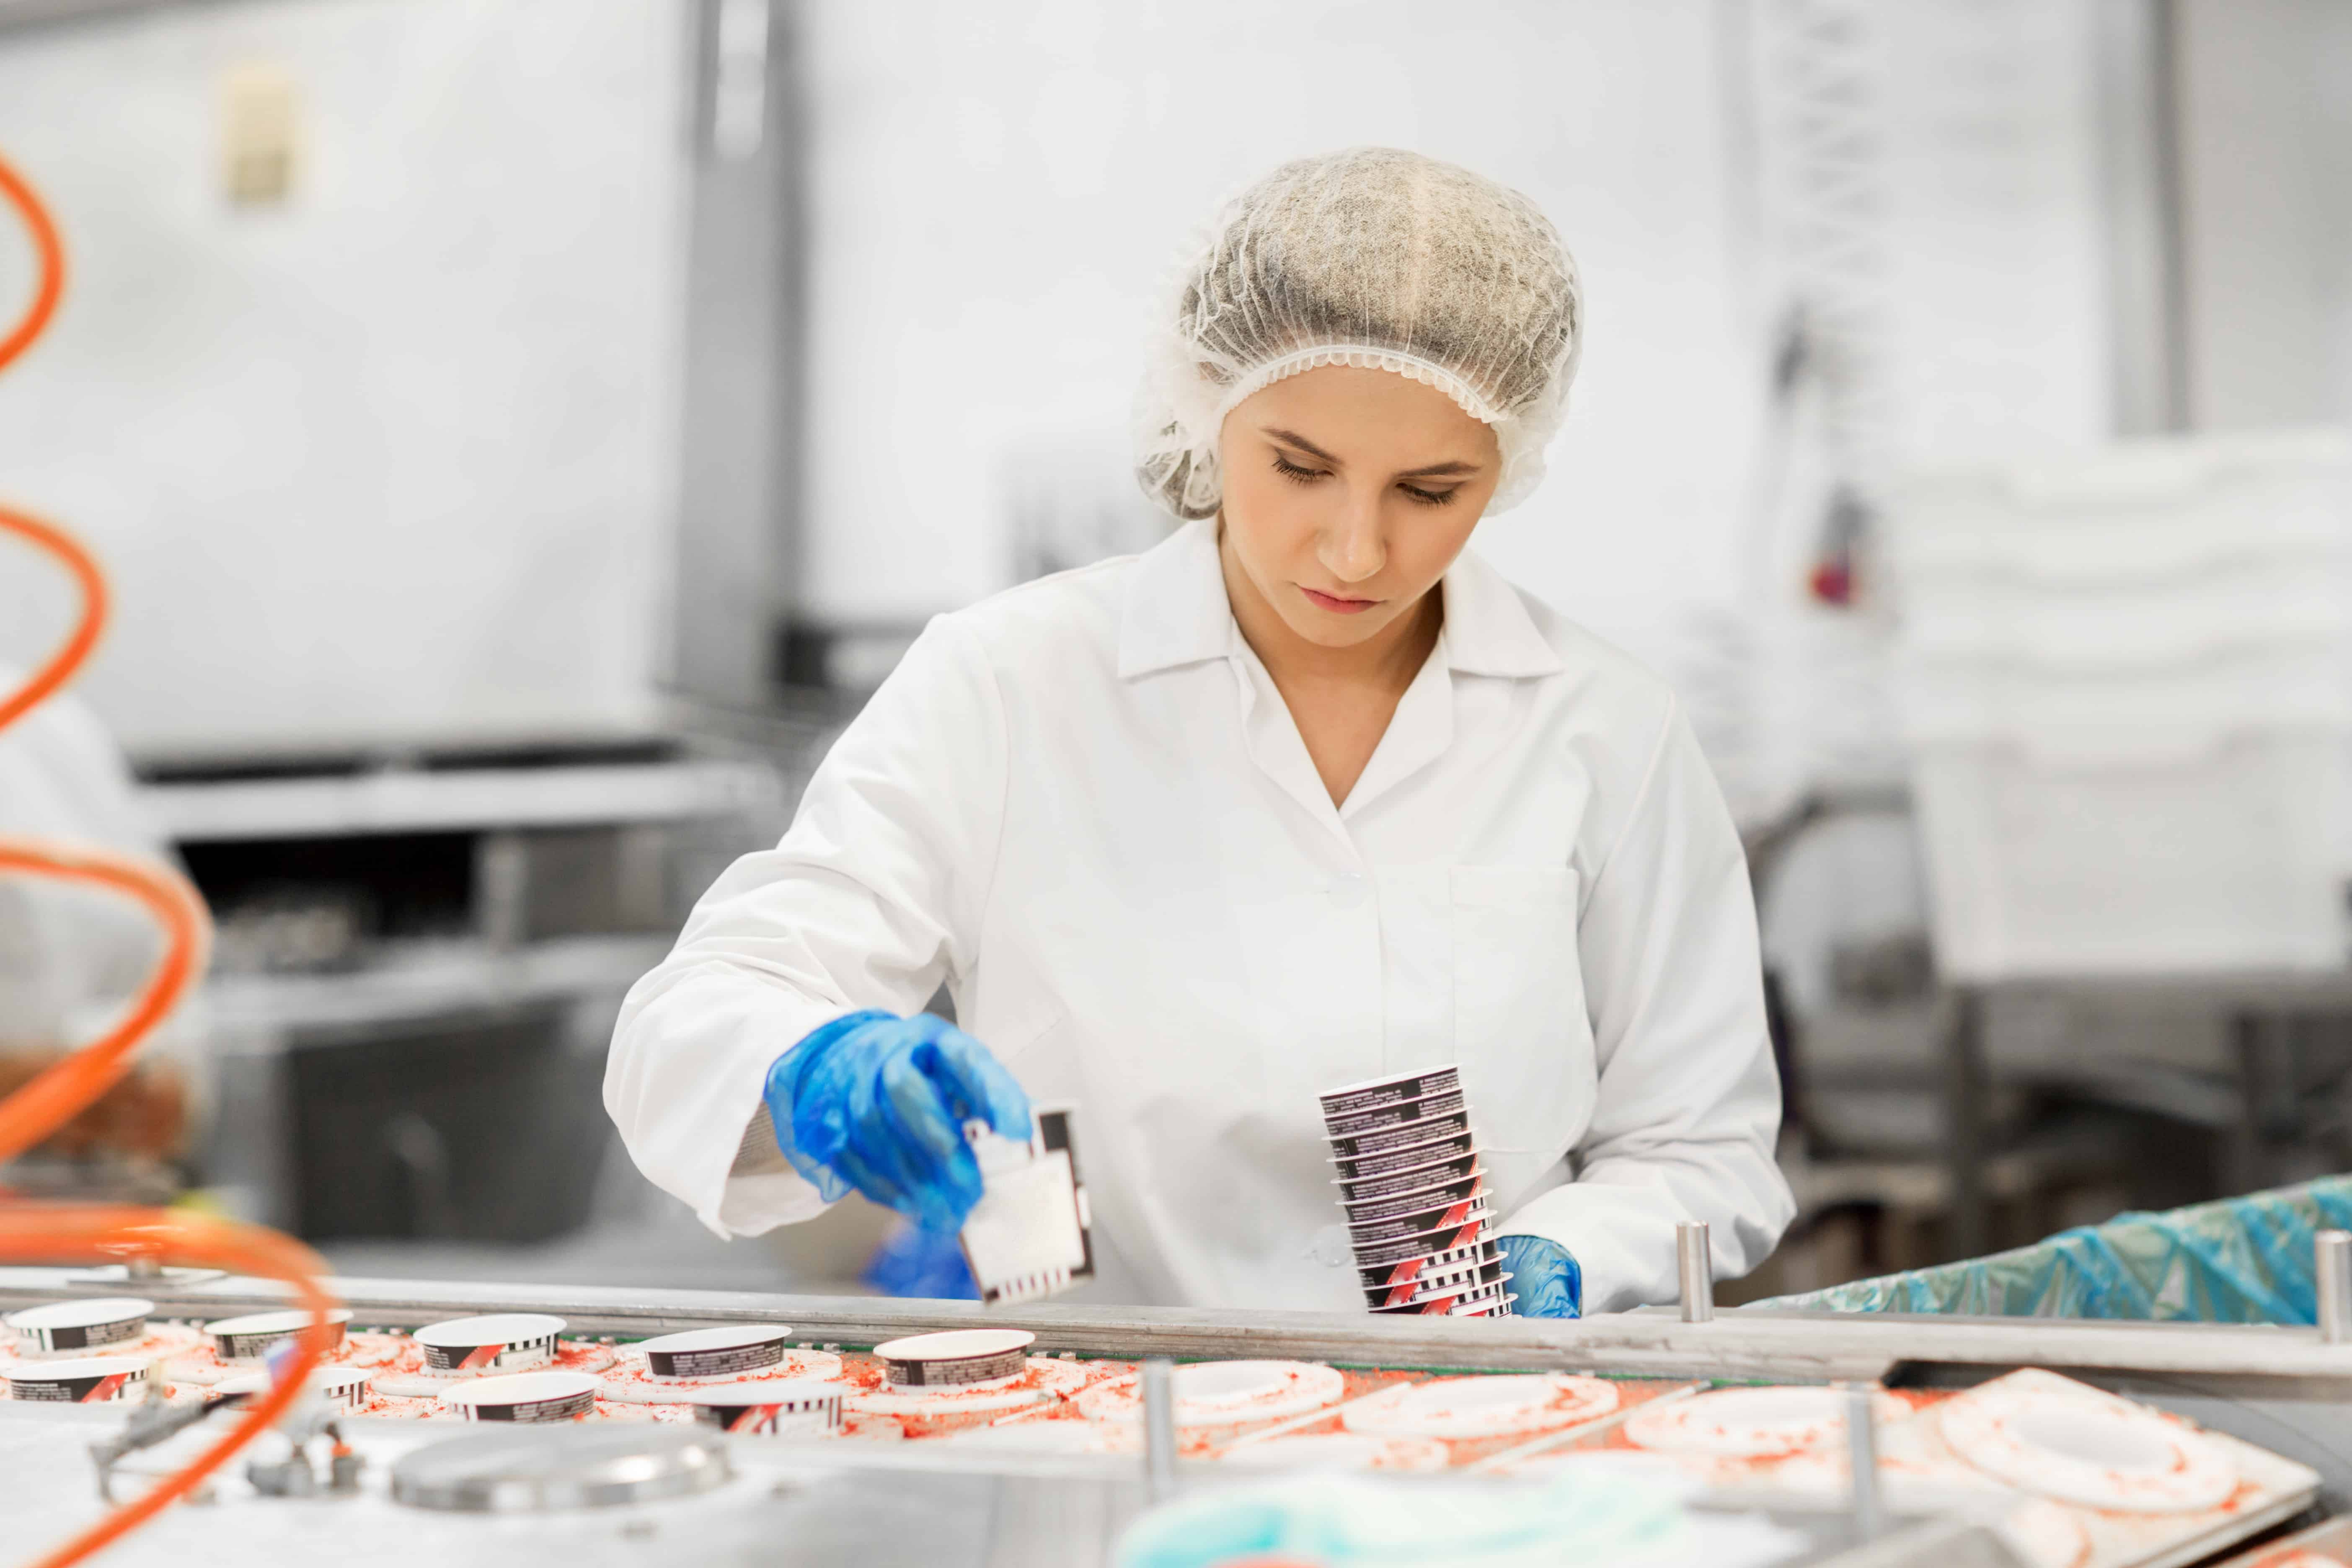 Tackling The UK's Food Processing & Production Skills Shortages